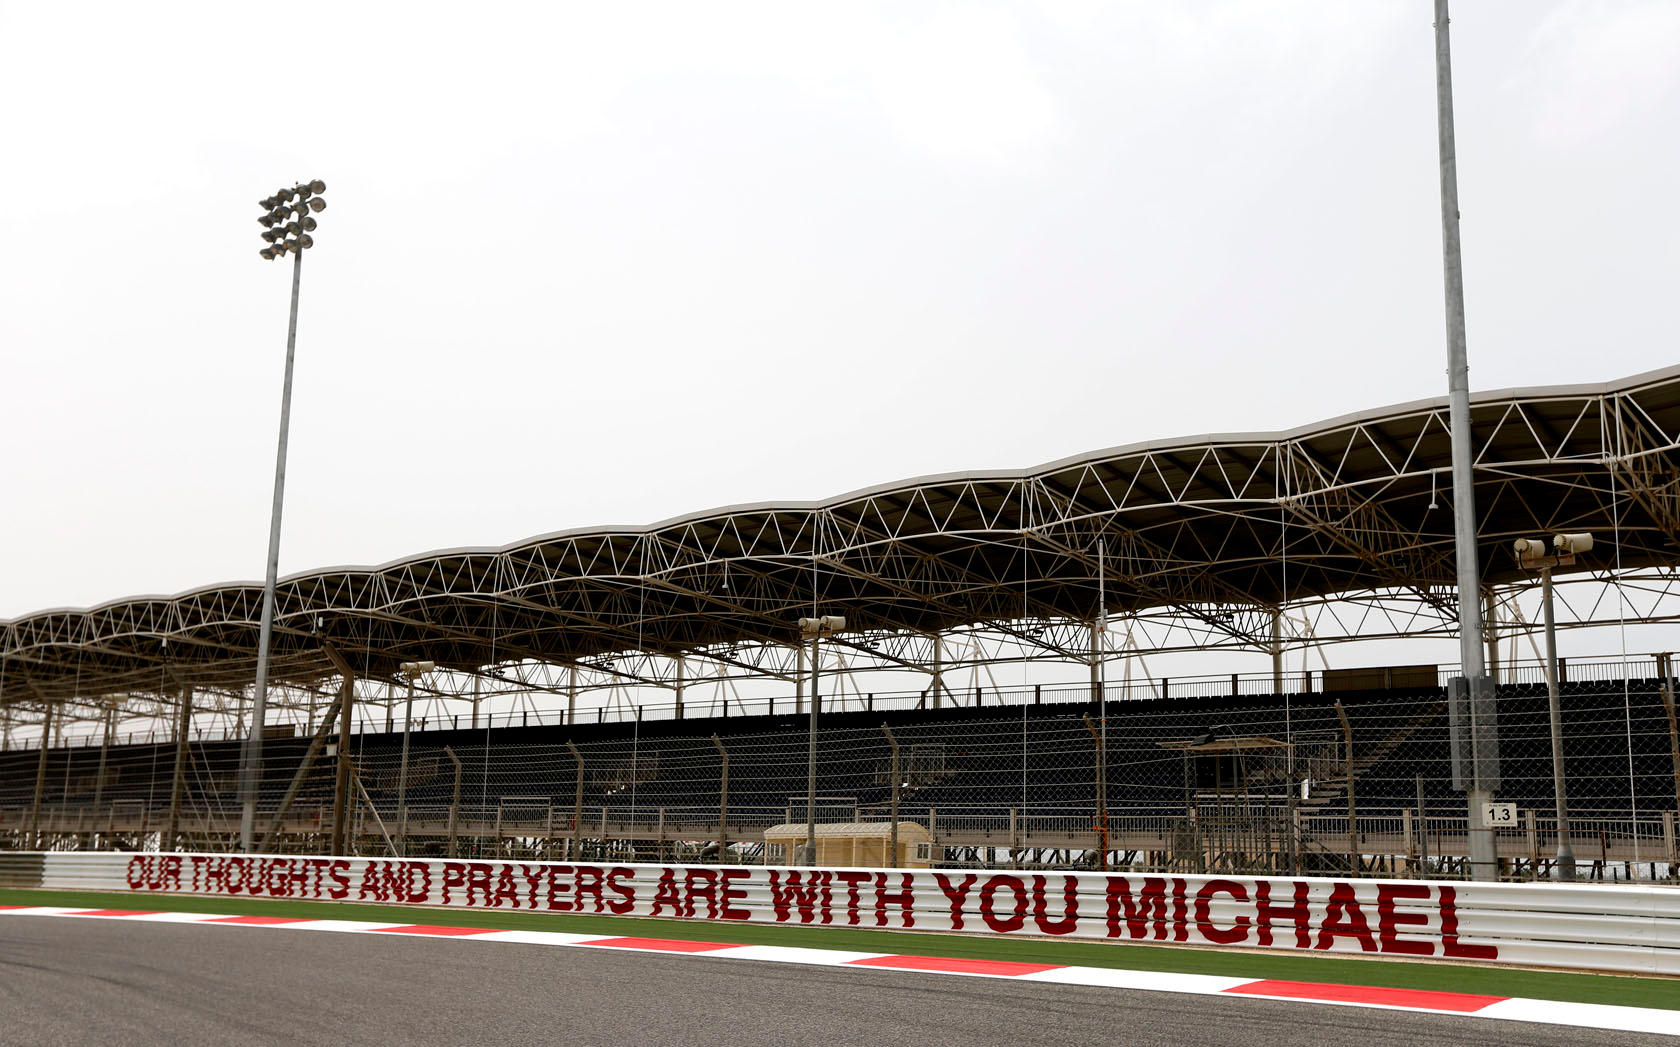 schumacher-supportmsg-bahrain-14